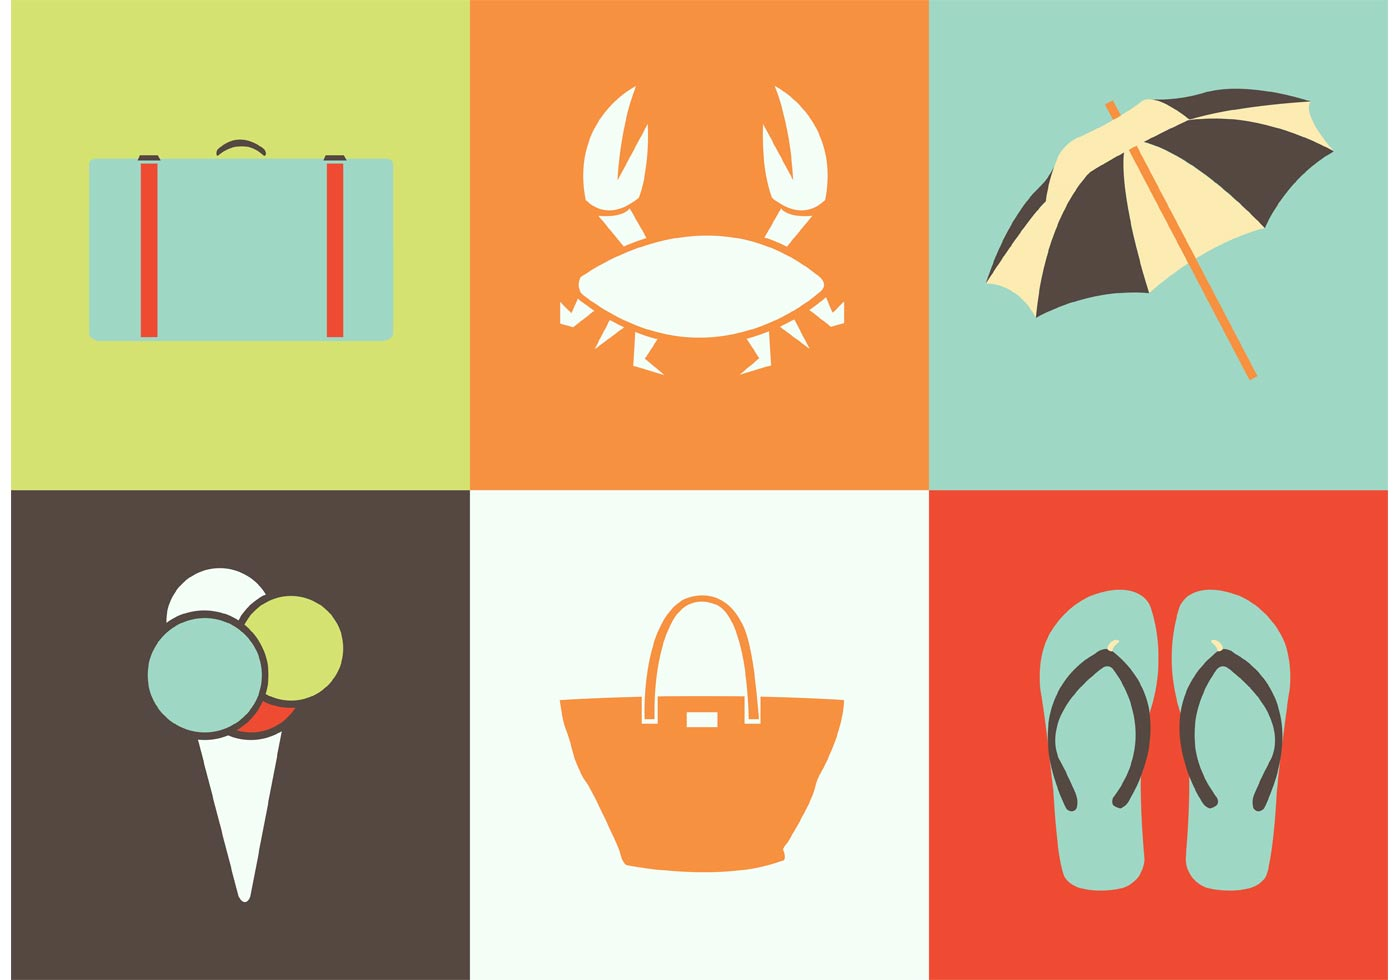 flip flop chair monogrammed childrens summer icon vectors - download free vector art, stock graphics & images